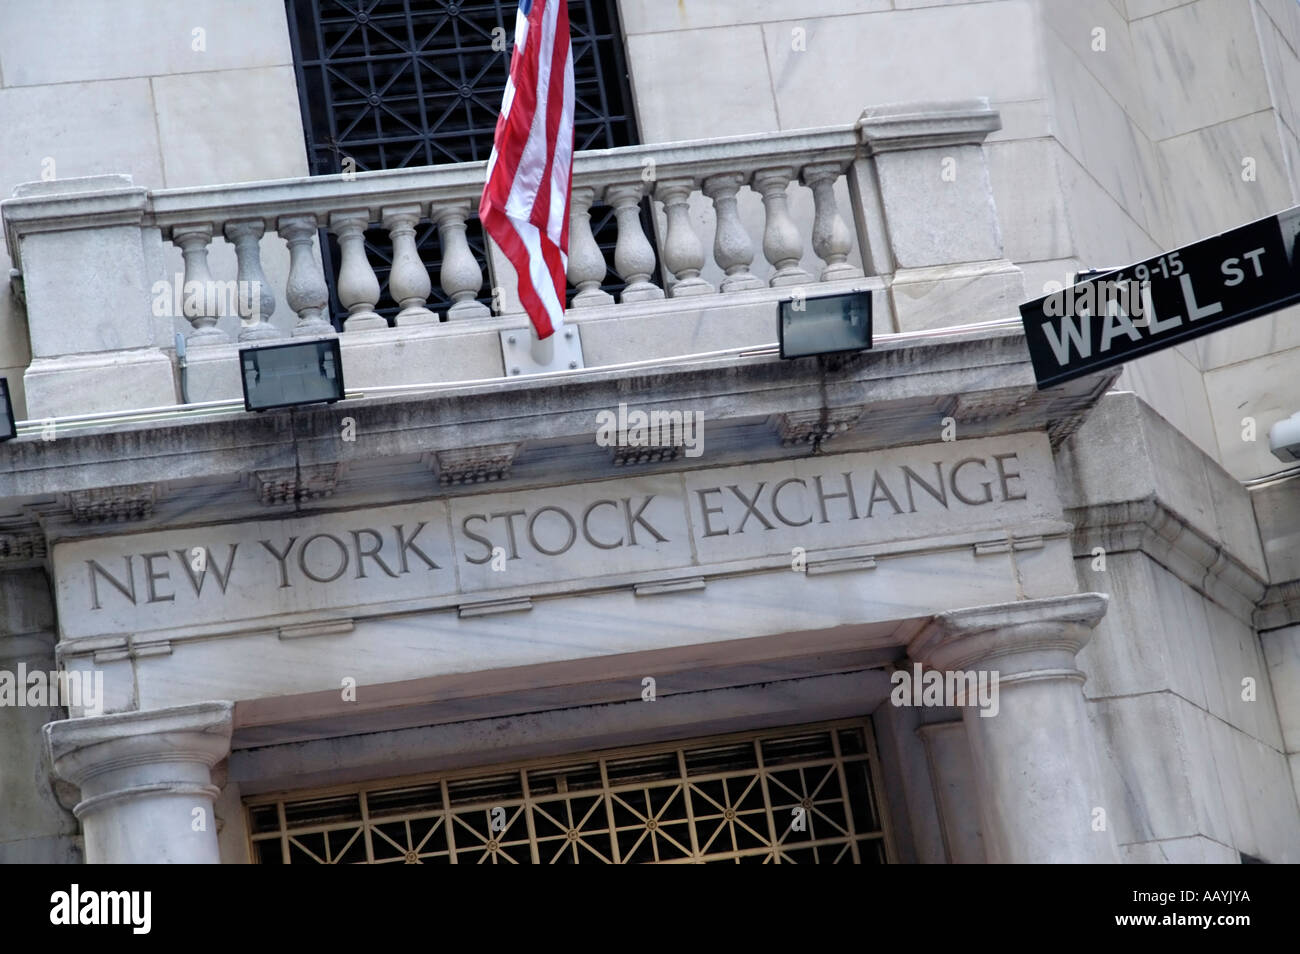 Wall Street entrance to New York Stock Exchange building - Stock Image